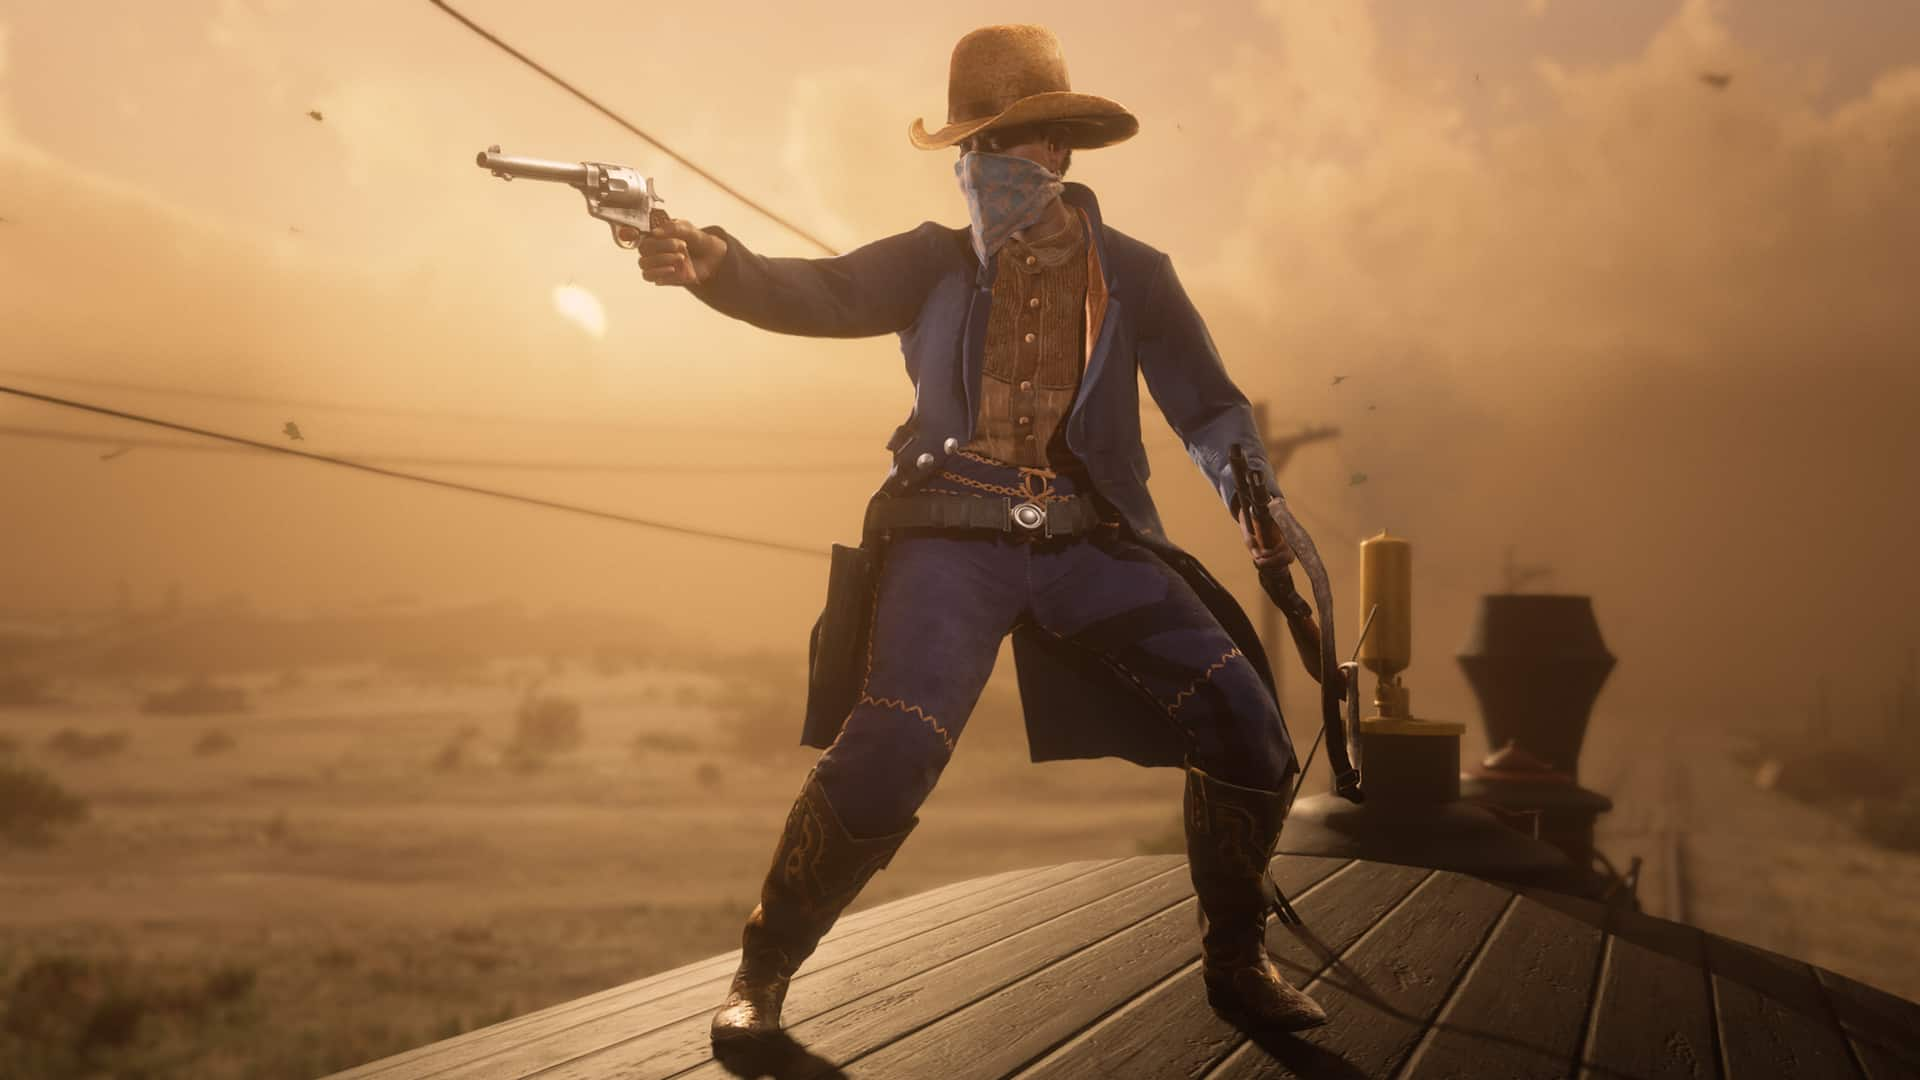 Get Red Dead Online Bonuses With Twitch Prime - RDR2 org